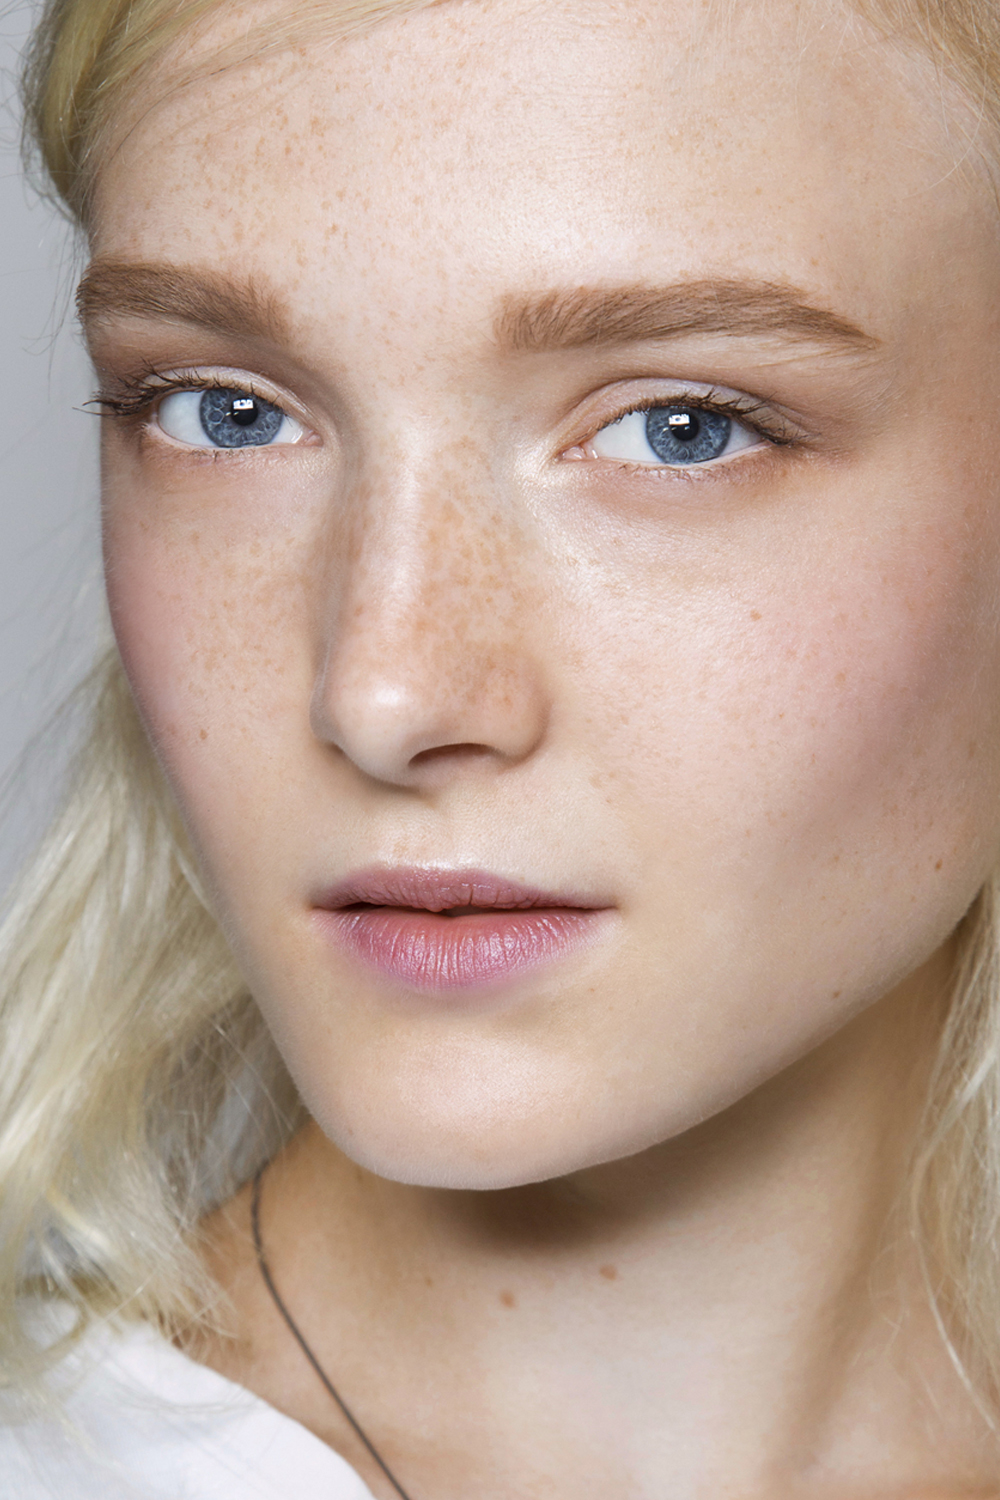 Pale Beauty Portrait Of Blond Woman Stock Image: DriverLayer Search Engine